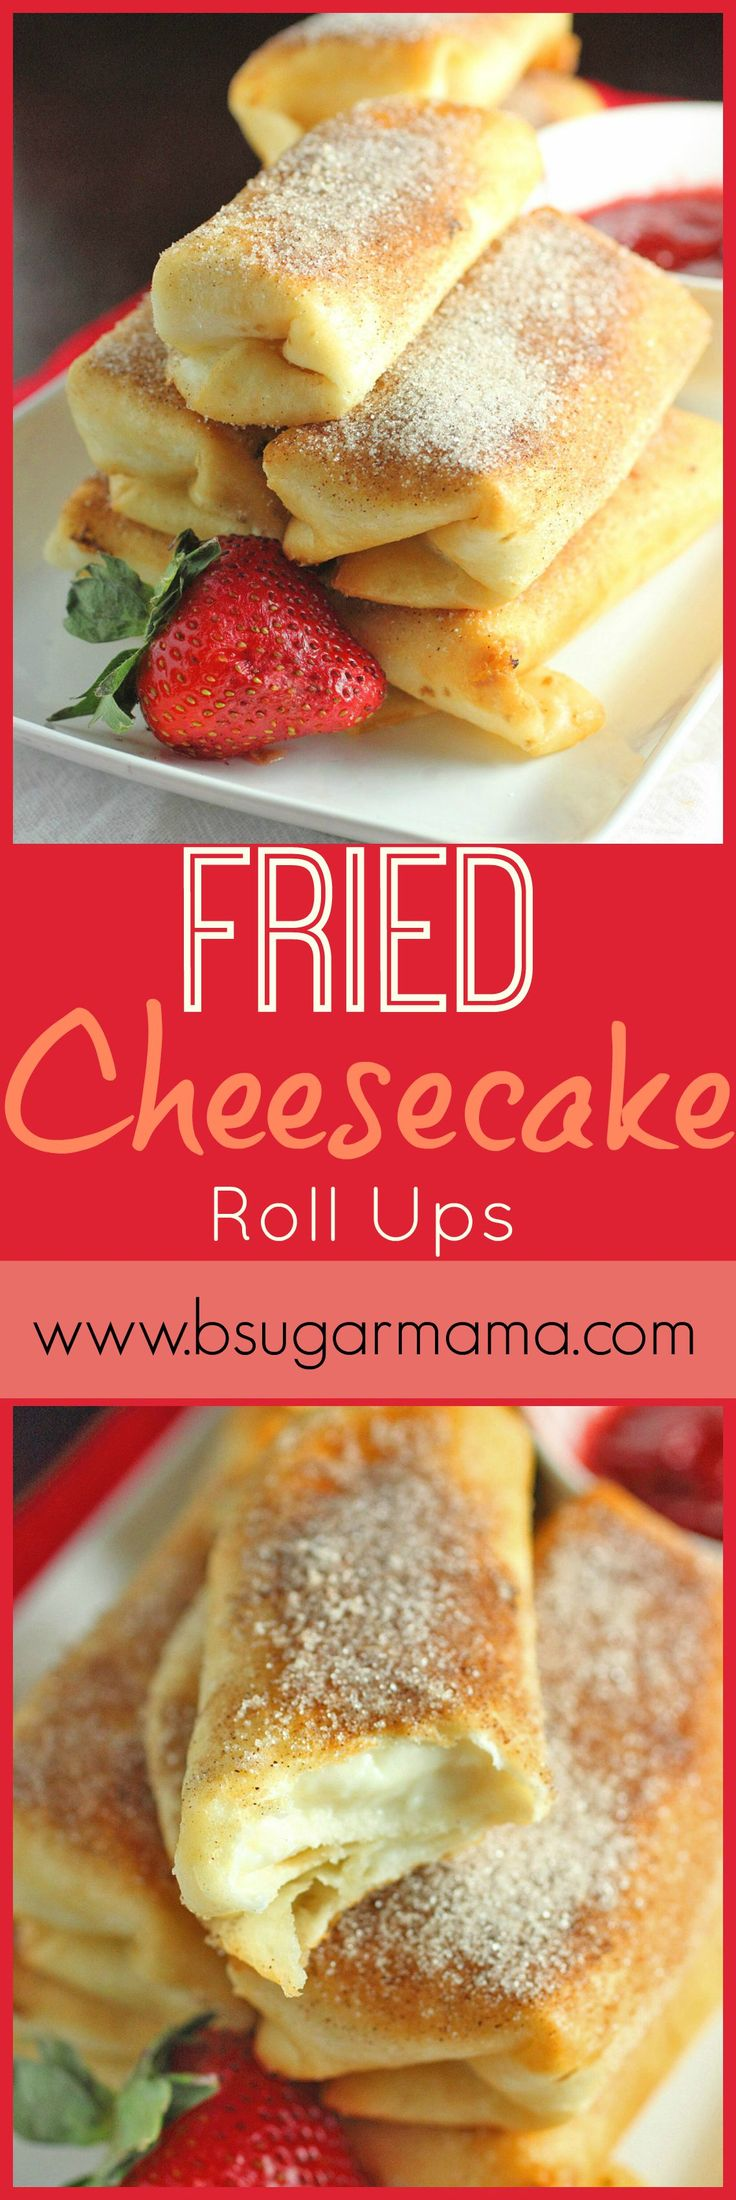 Fried Cheesecake Roll-Ups!